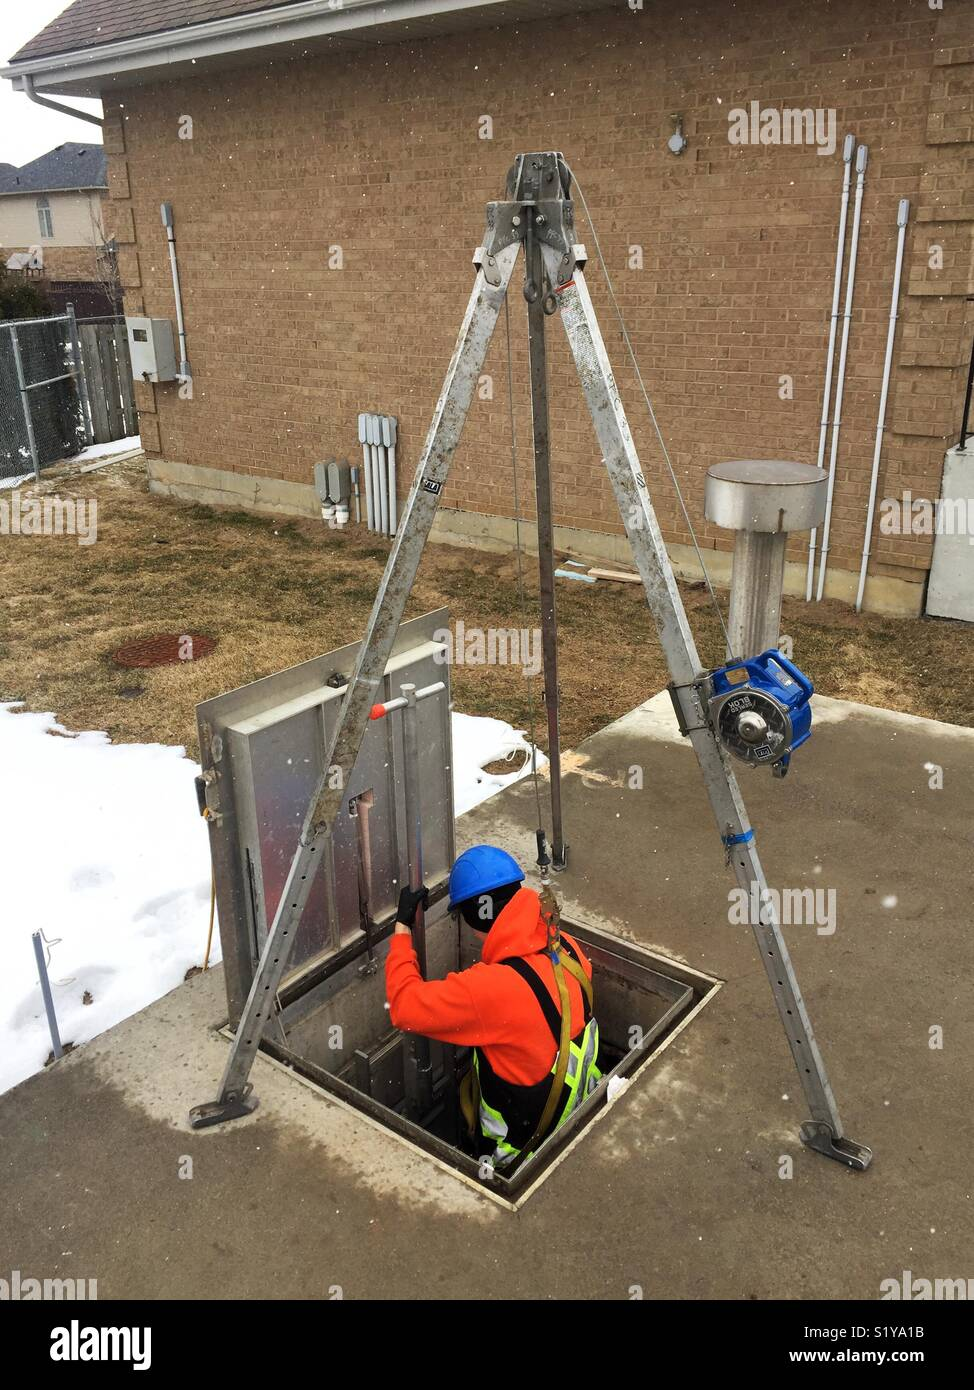 Worker entering a confined space using tripod and winch - Stock Image